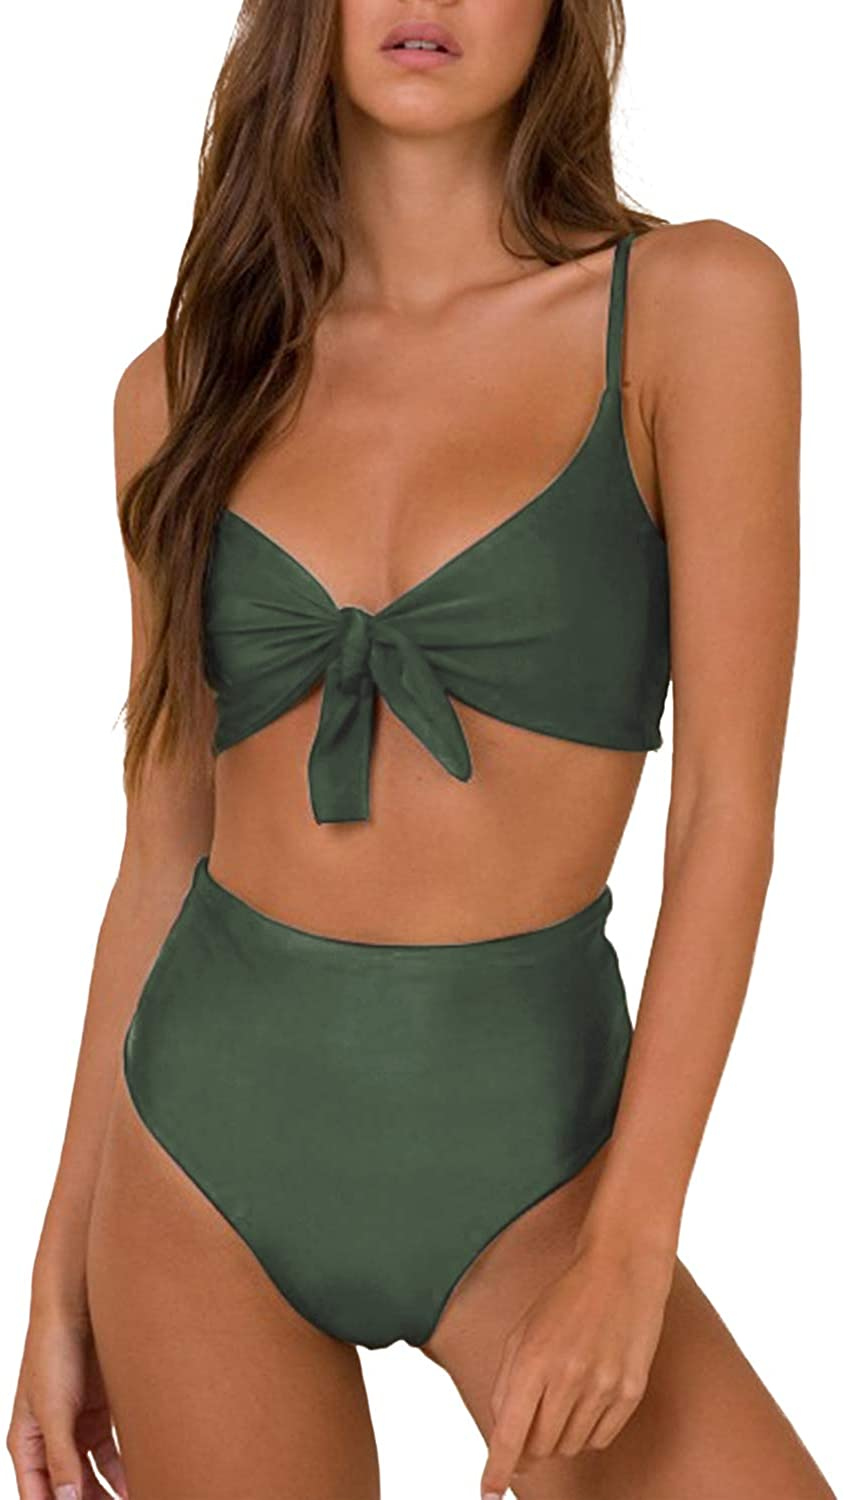 Blooming Jelly Womens High Waisted Bikini Set Two Piece Swimsuits Gingham Tie Knot Bathing Suit